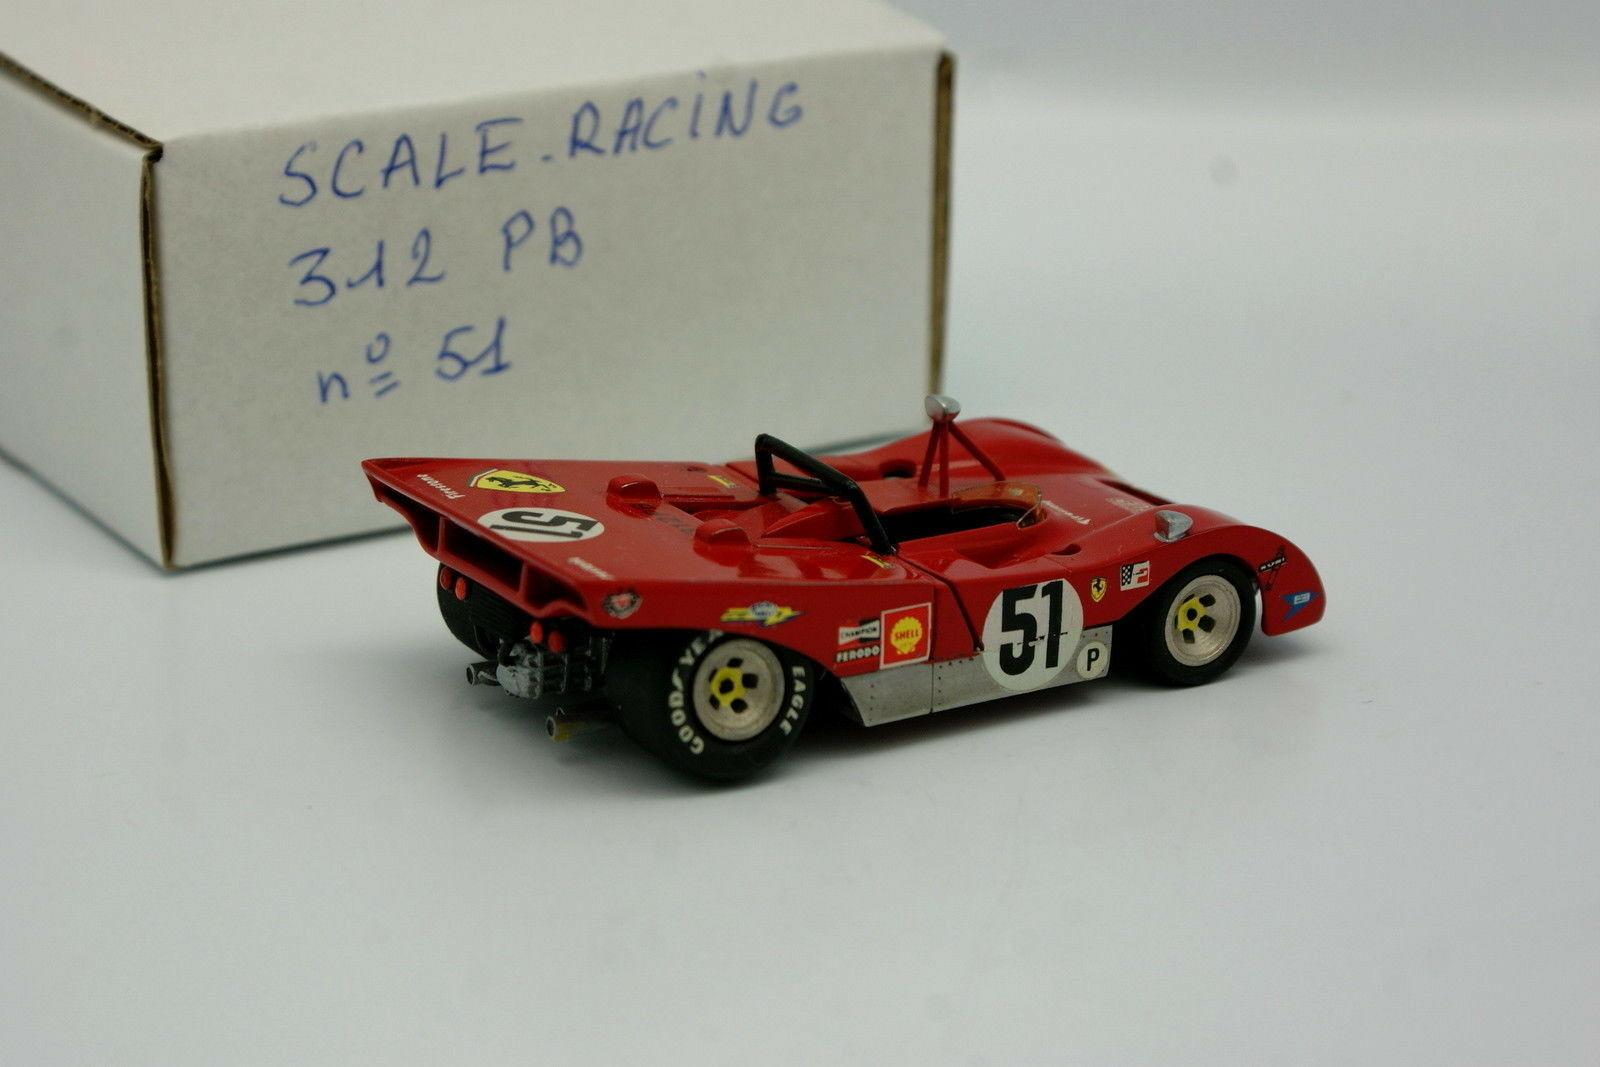 Scale Scale Scale Racing Kit Monté 1 43 - Ferrari 312 PB SEFAC N°51 Brands Hatch 1971 4699de